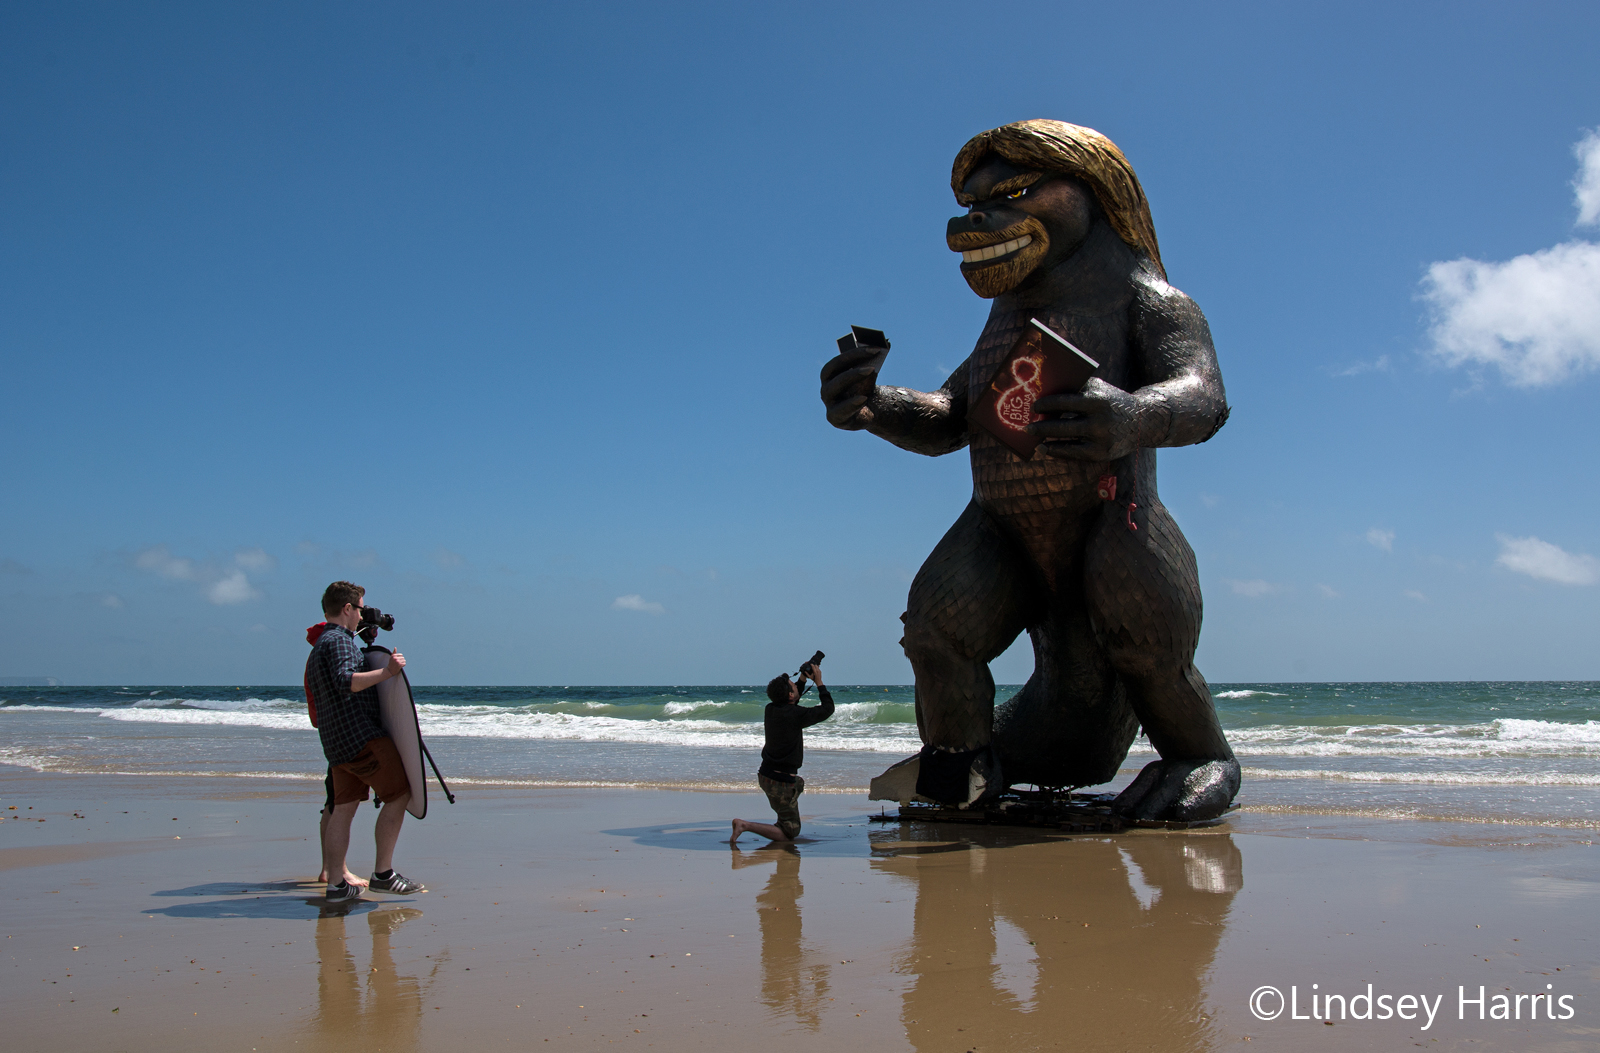 #BigKahunaSpotted – Richard Branson 'monster' on the beach at Bournemouth, Dorset